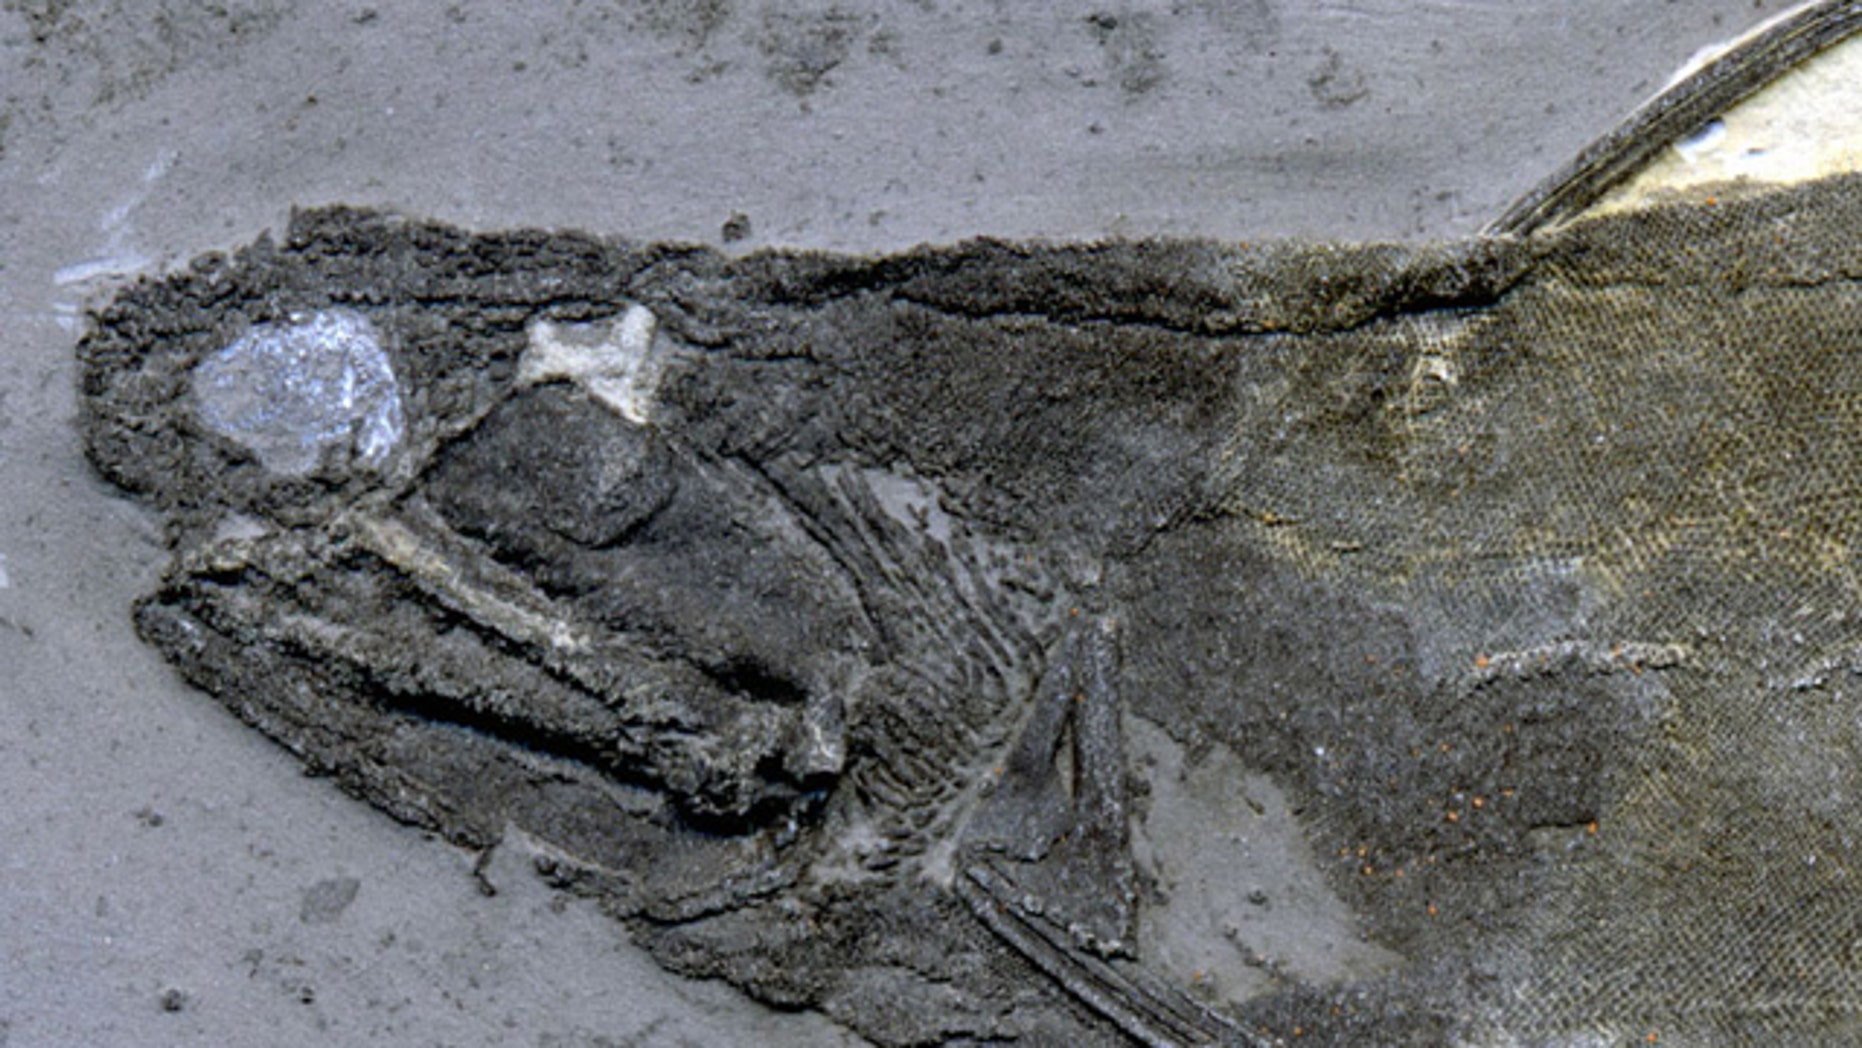 The tooth-like lip and cheek scales were found in specimens of ischnacanthid acanthodians similar to this one from the University of Alberta Laboratory for Vertebrate Paleontology.